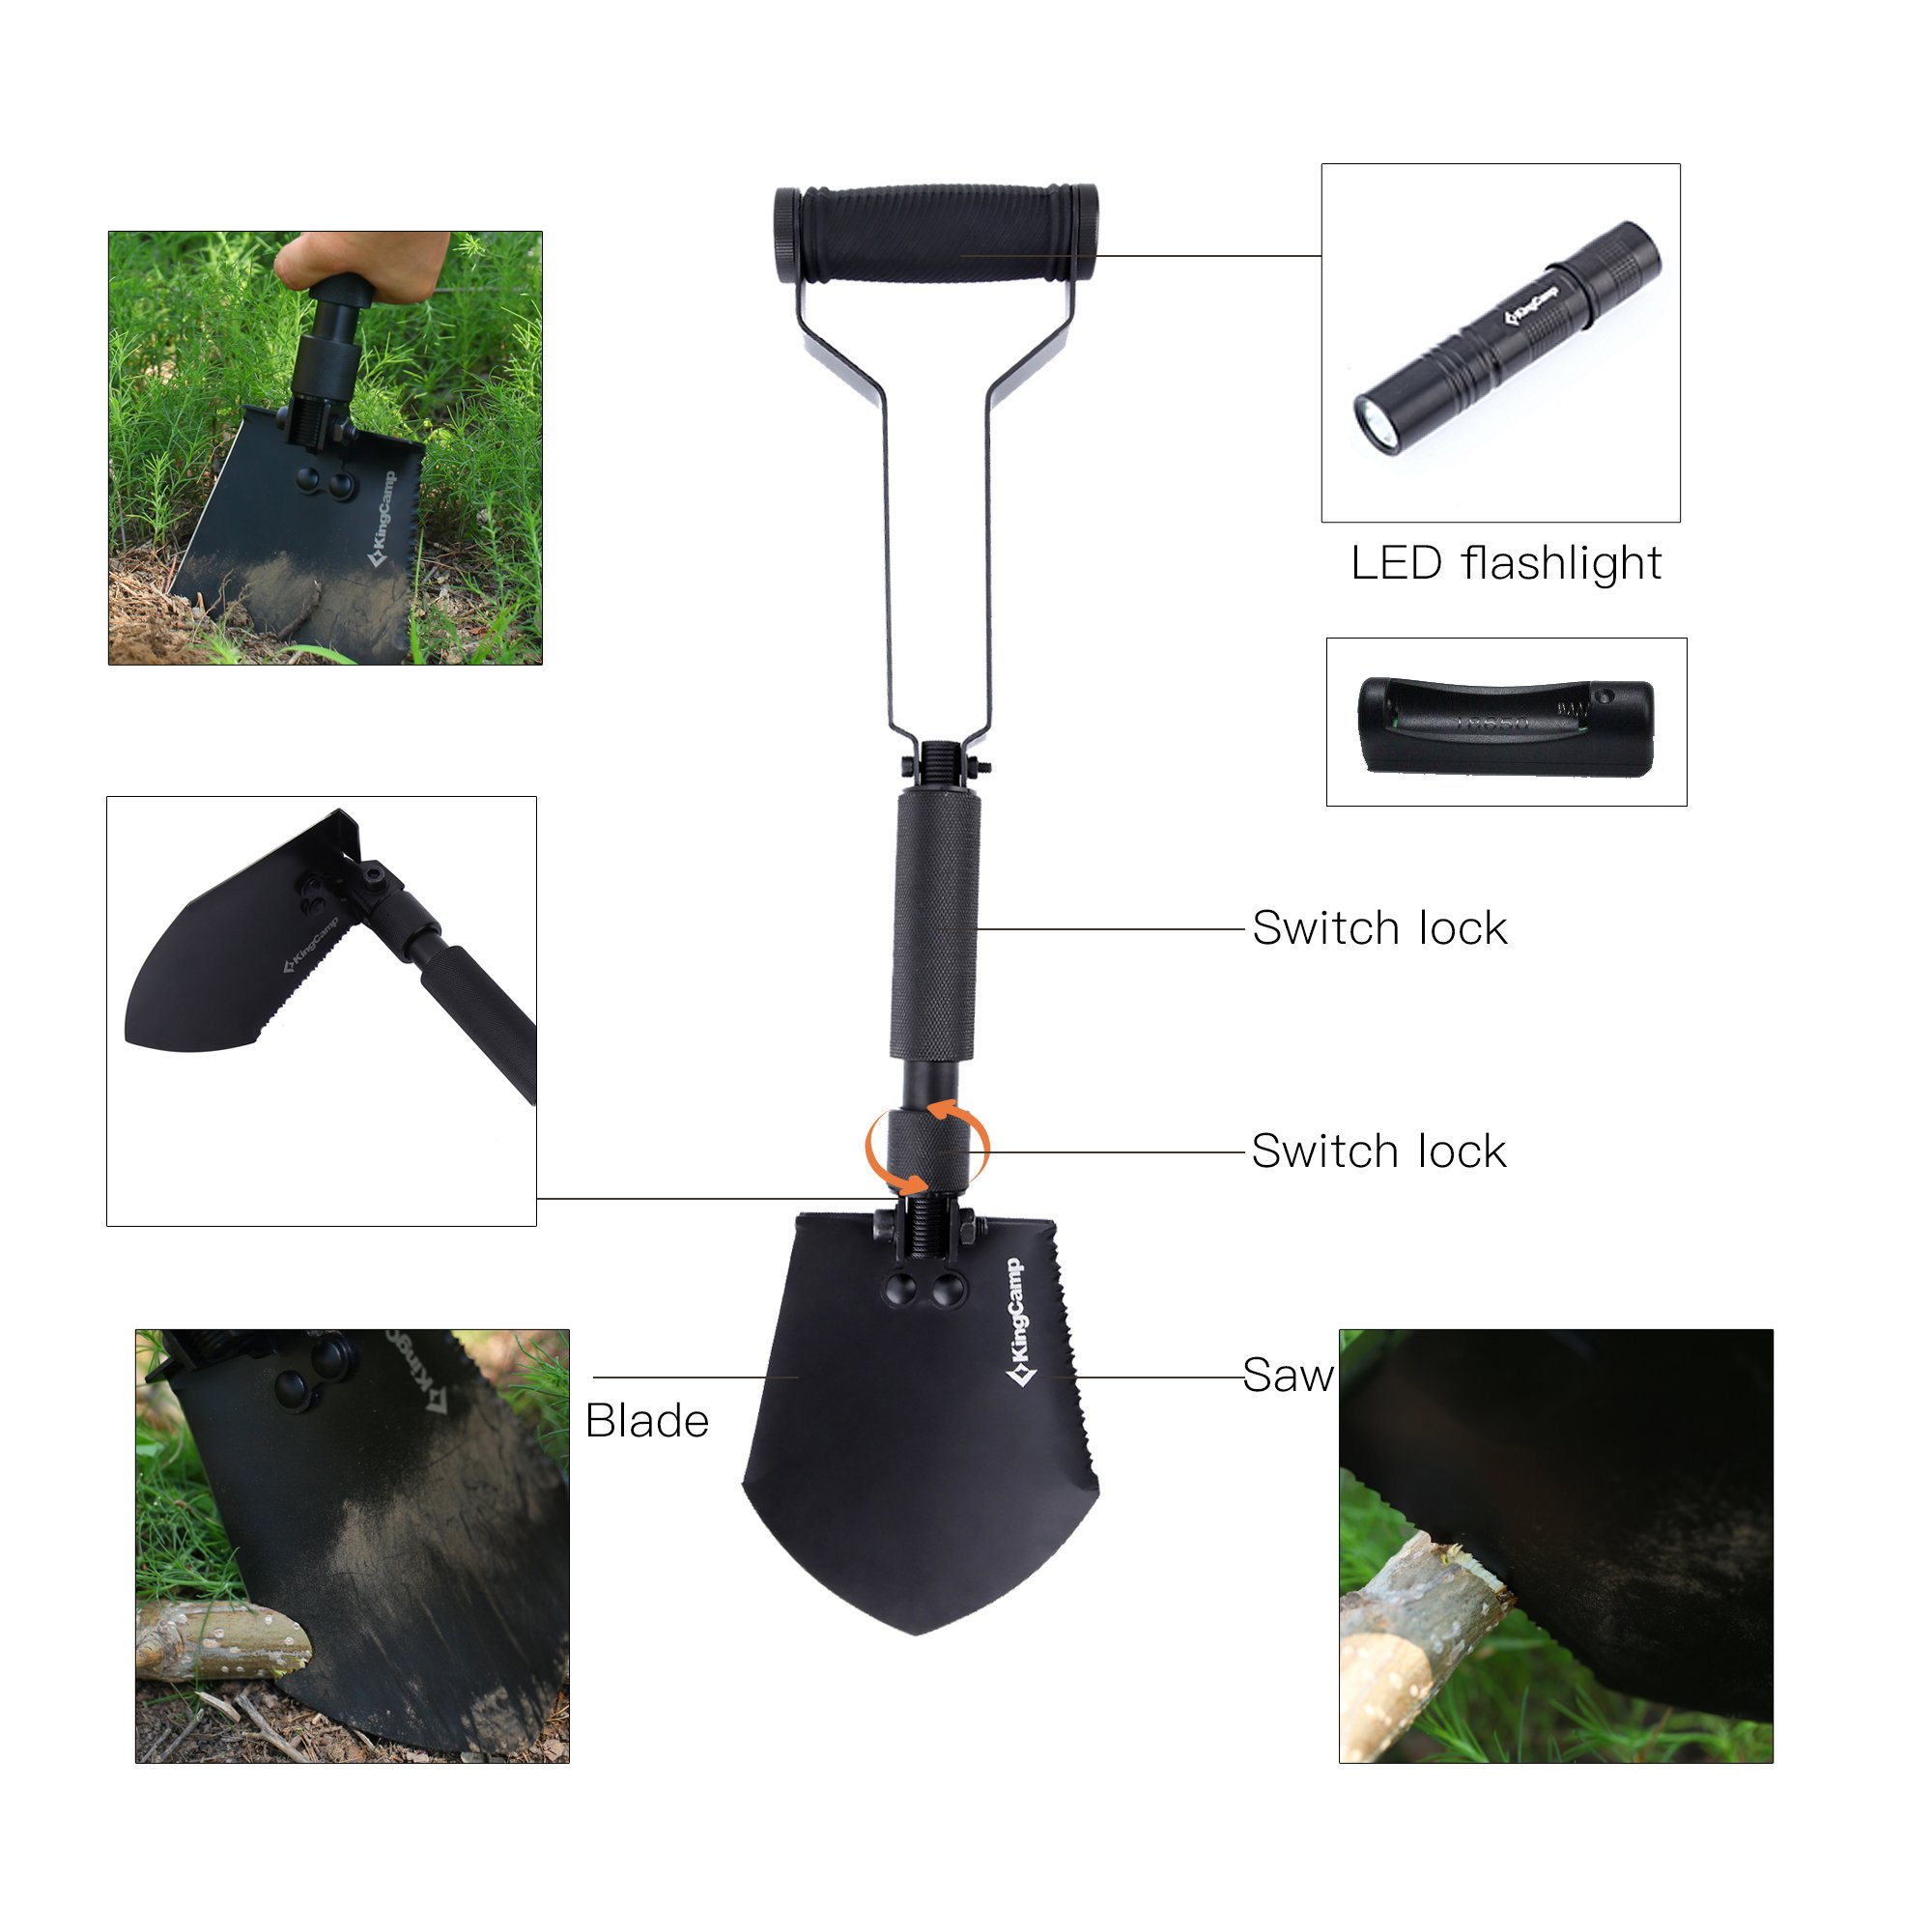 KingCamp Military Portable Folding Shovel and Pickax, Compact Multifunctional Entrenching Tool with Nylon Carry Case for Hiking, Hunting, Fishing, Gardening, Camping, Backpacking, Emergencies